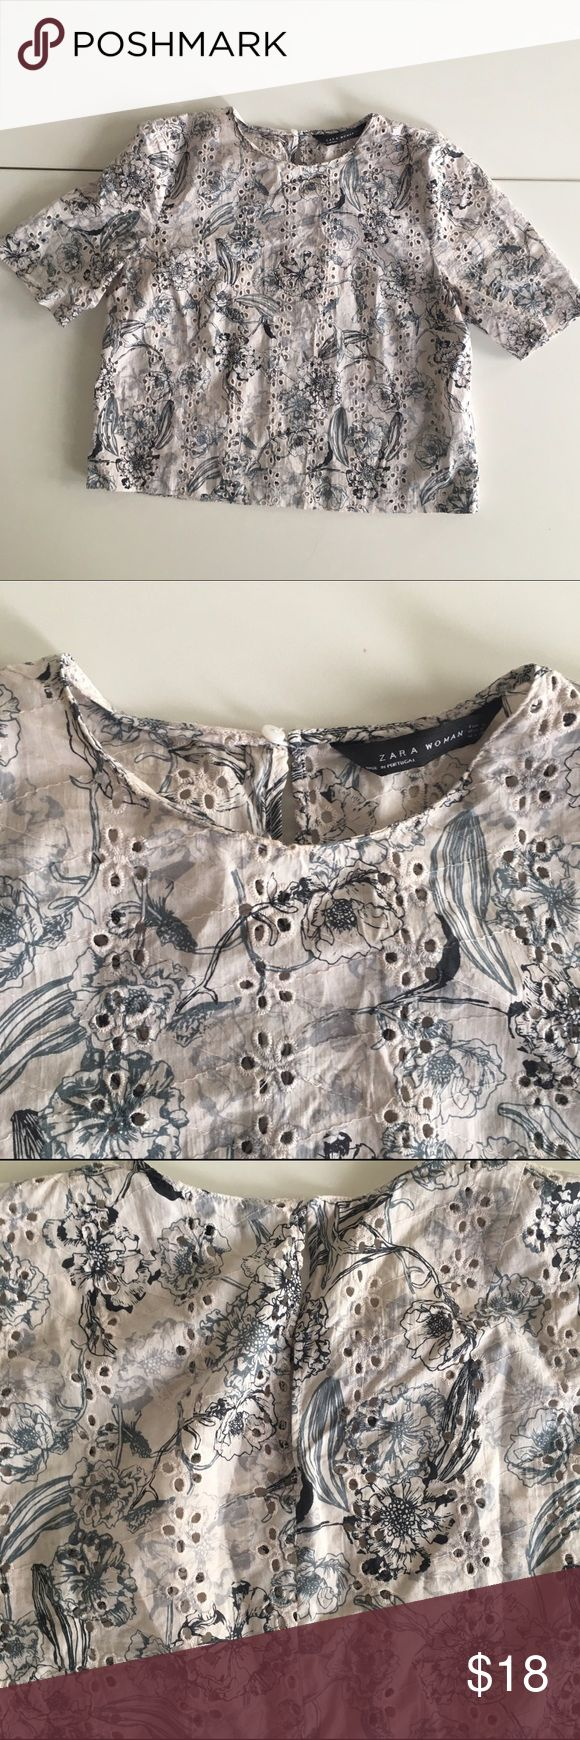 Zara woman eyelet embroidered floral top A beautiful embroidered top that will be perfect for spring days with a light jacket. Button hole at back. 100% cotton. Zara Tops Blouses